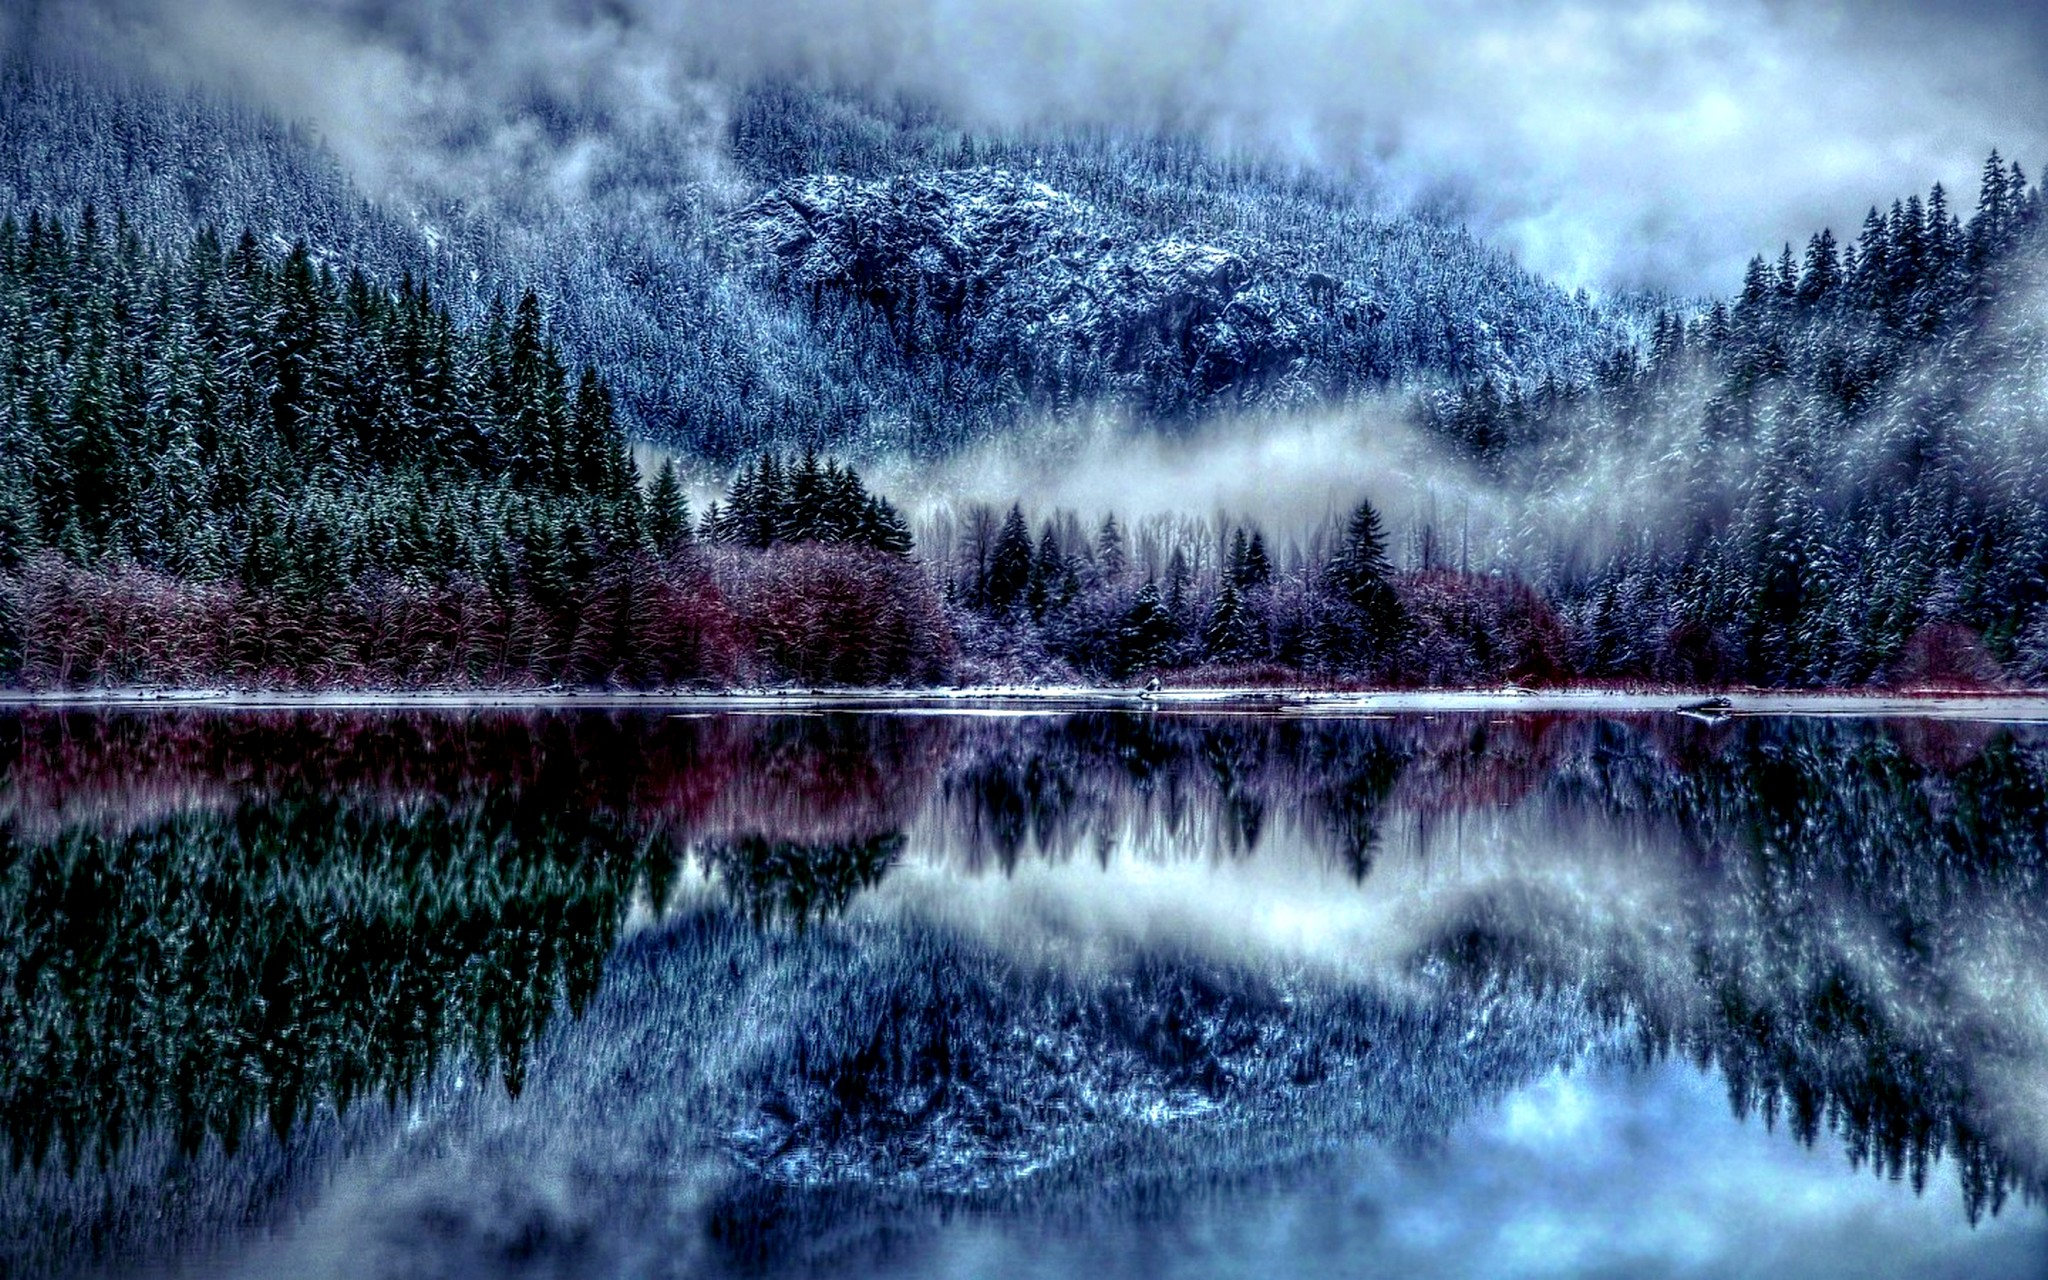 Winter Forest HD Wallpaper   Winter Season Desktop HD Wallpapers 2048x1280